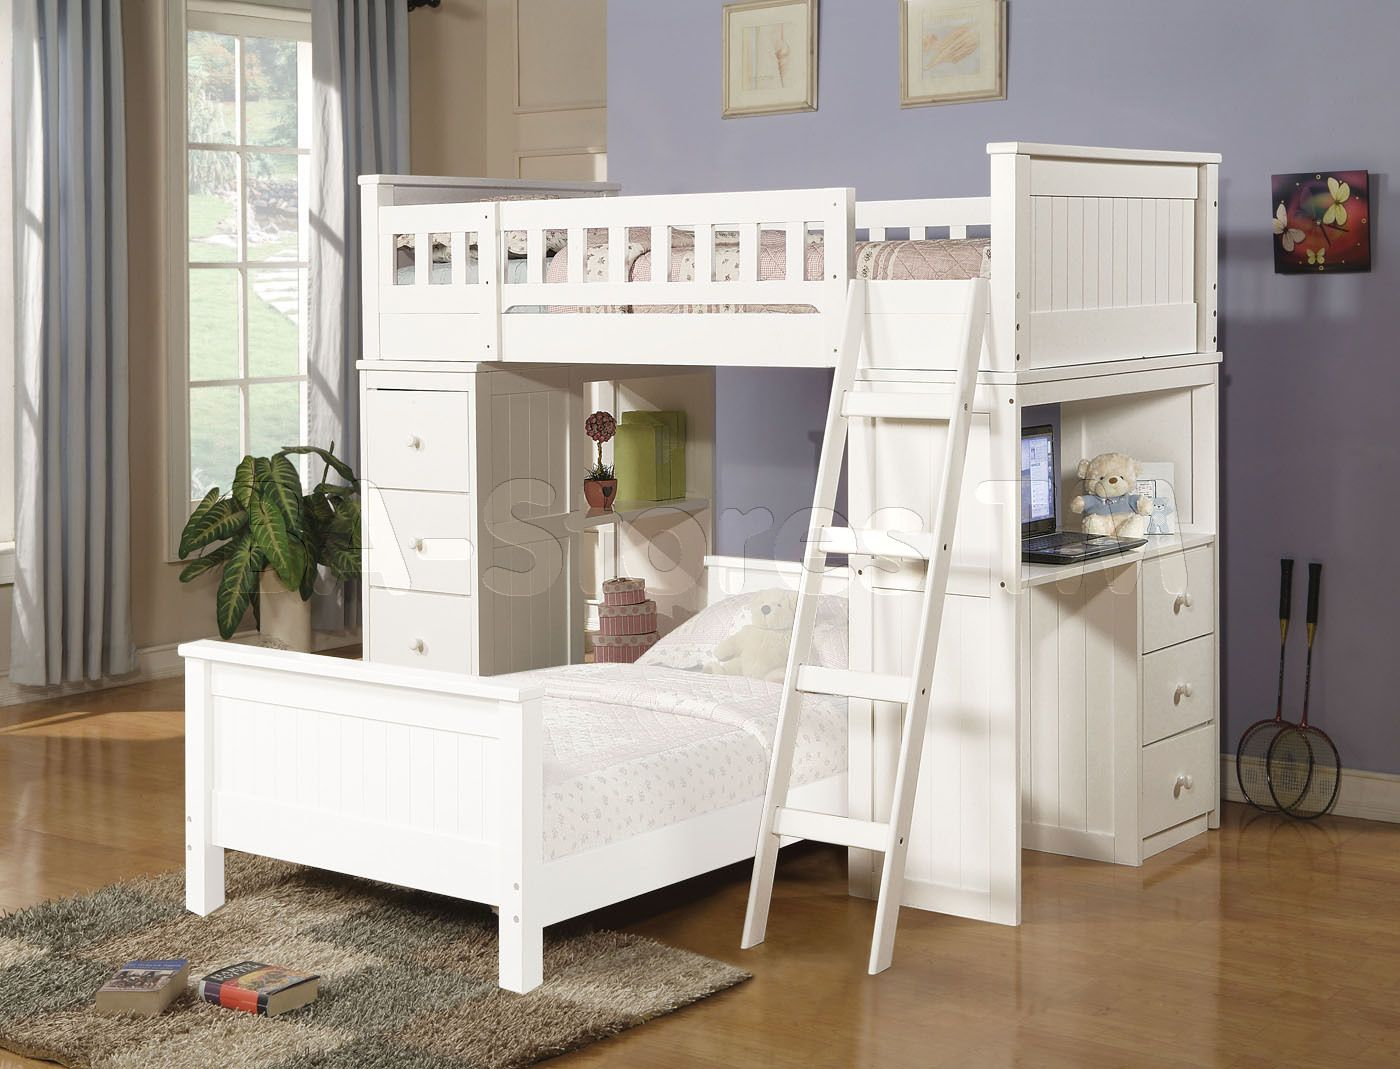 Loft captains bed twin  Sale  Willoughby White Twin Loft Bed  Loft and Bunk Beds AF